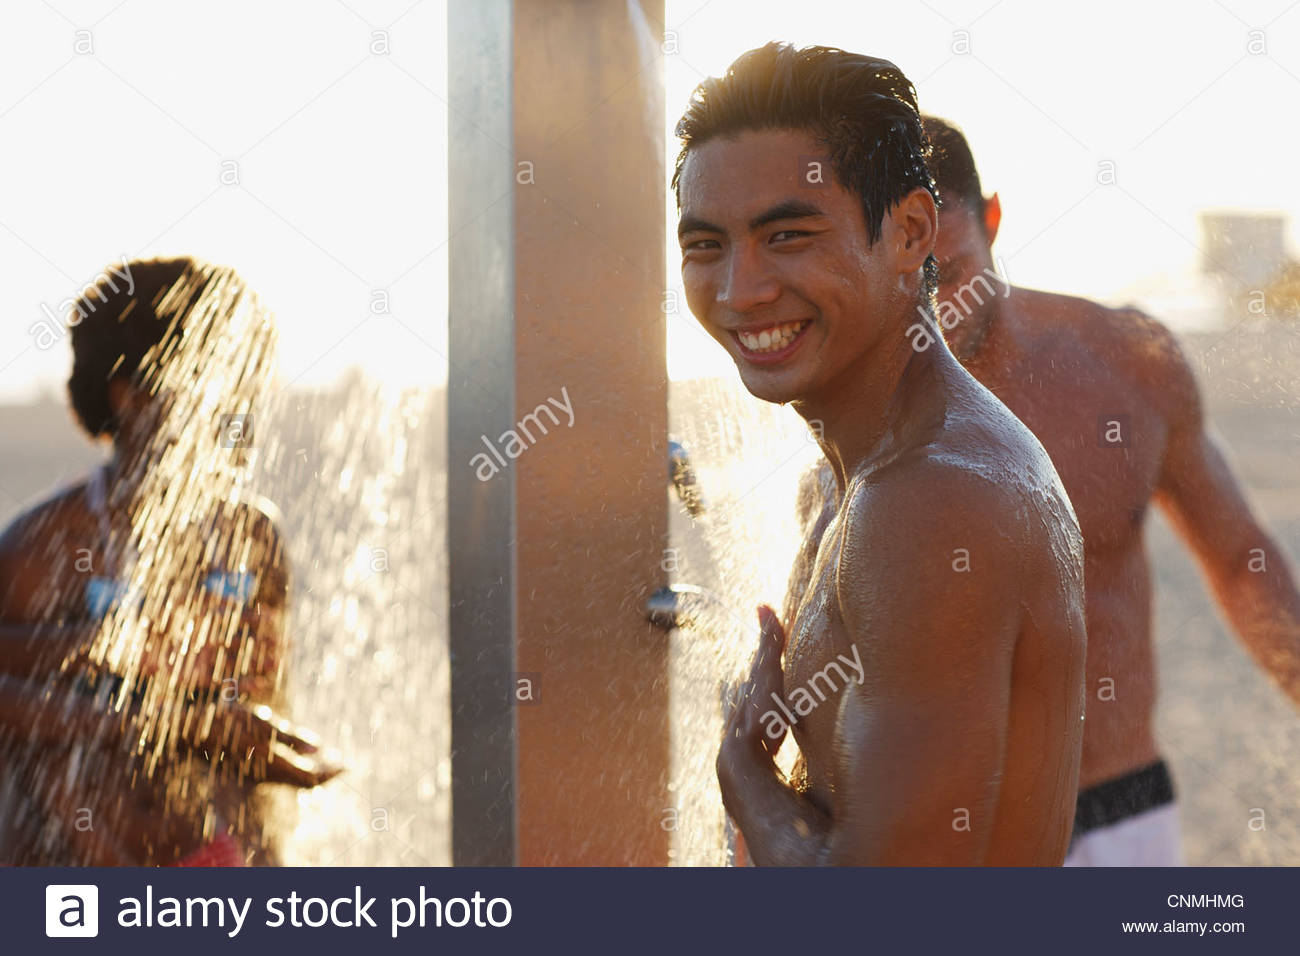 Men in swimsuits showering on beach - Stock Image